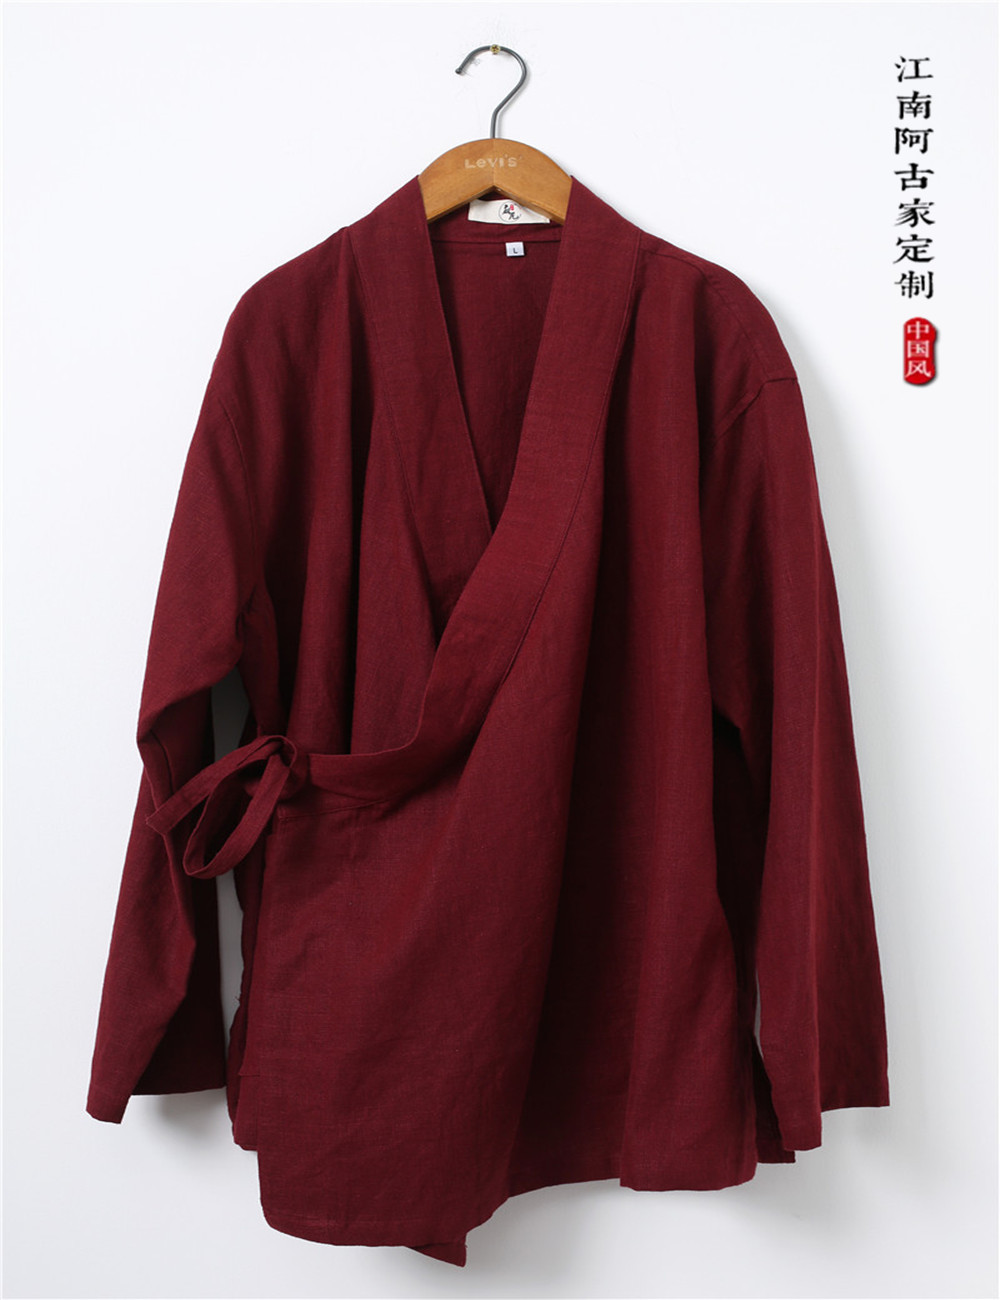 Jiangnan Agou custom Zen Hanfu Jacket Mens Costume Upasaka play short lace robe meditation repair service